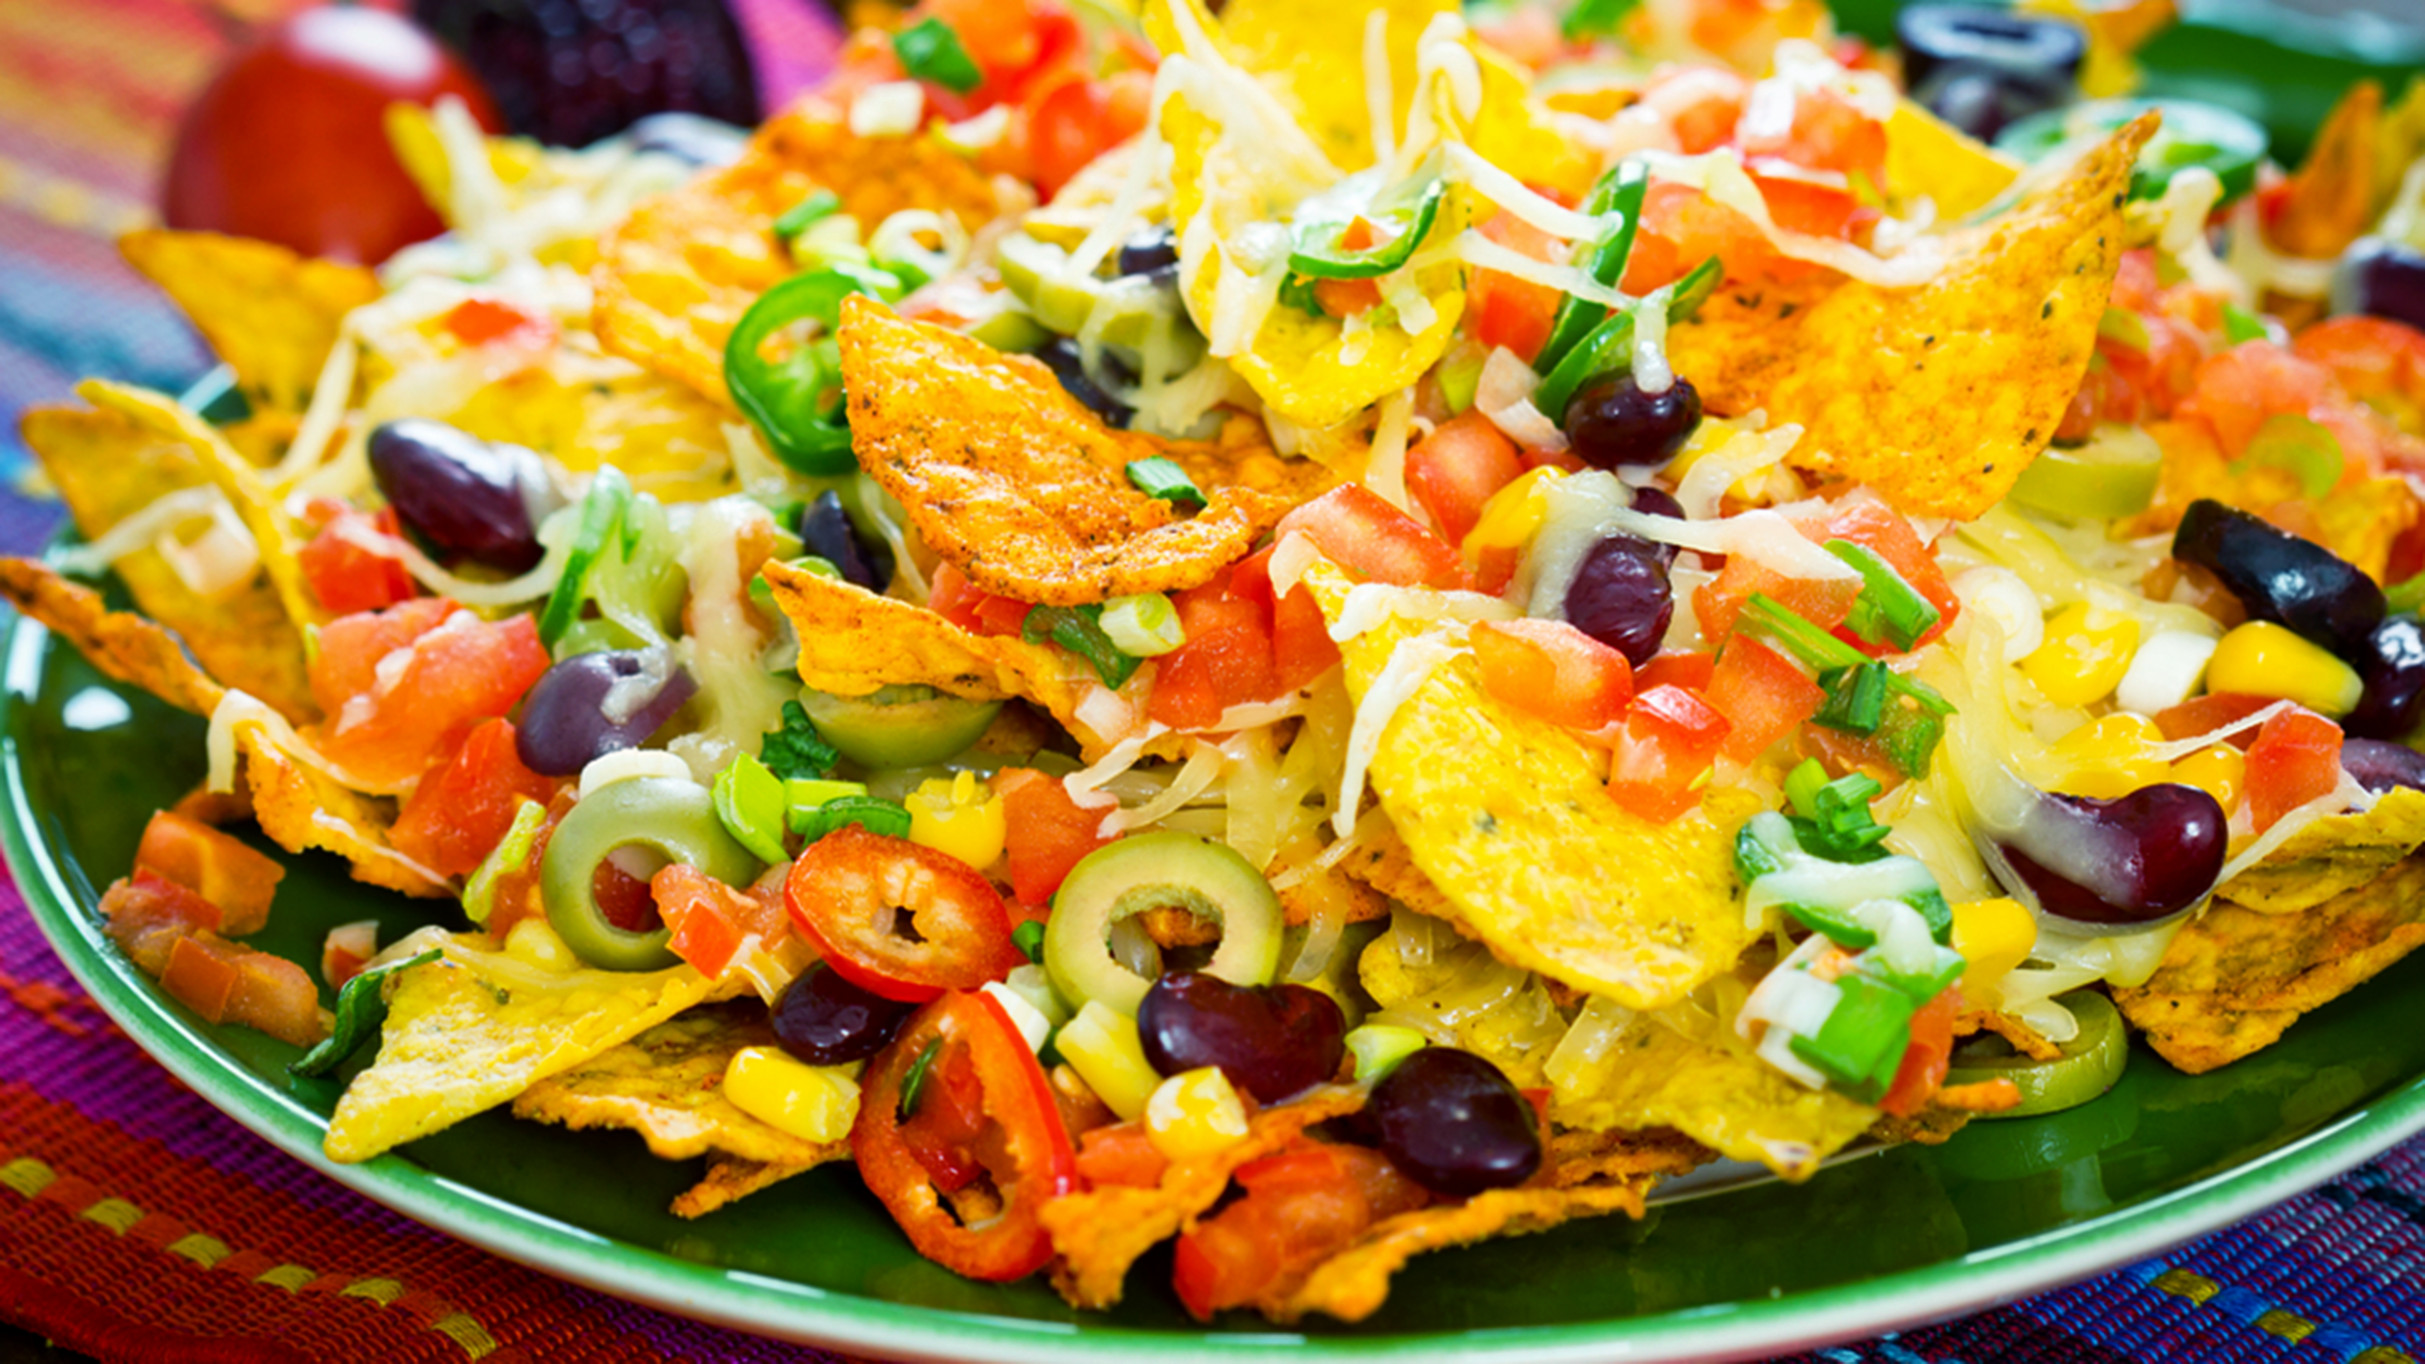 Nacho recipes: 13 delicious chip toppers, from healthy to loaded